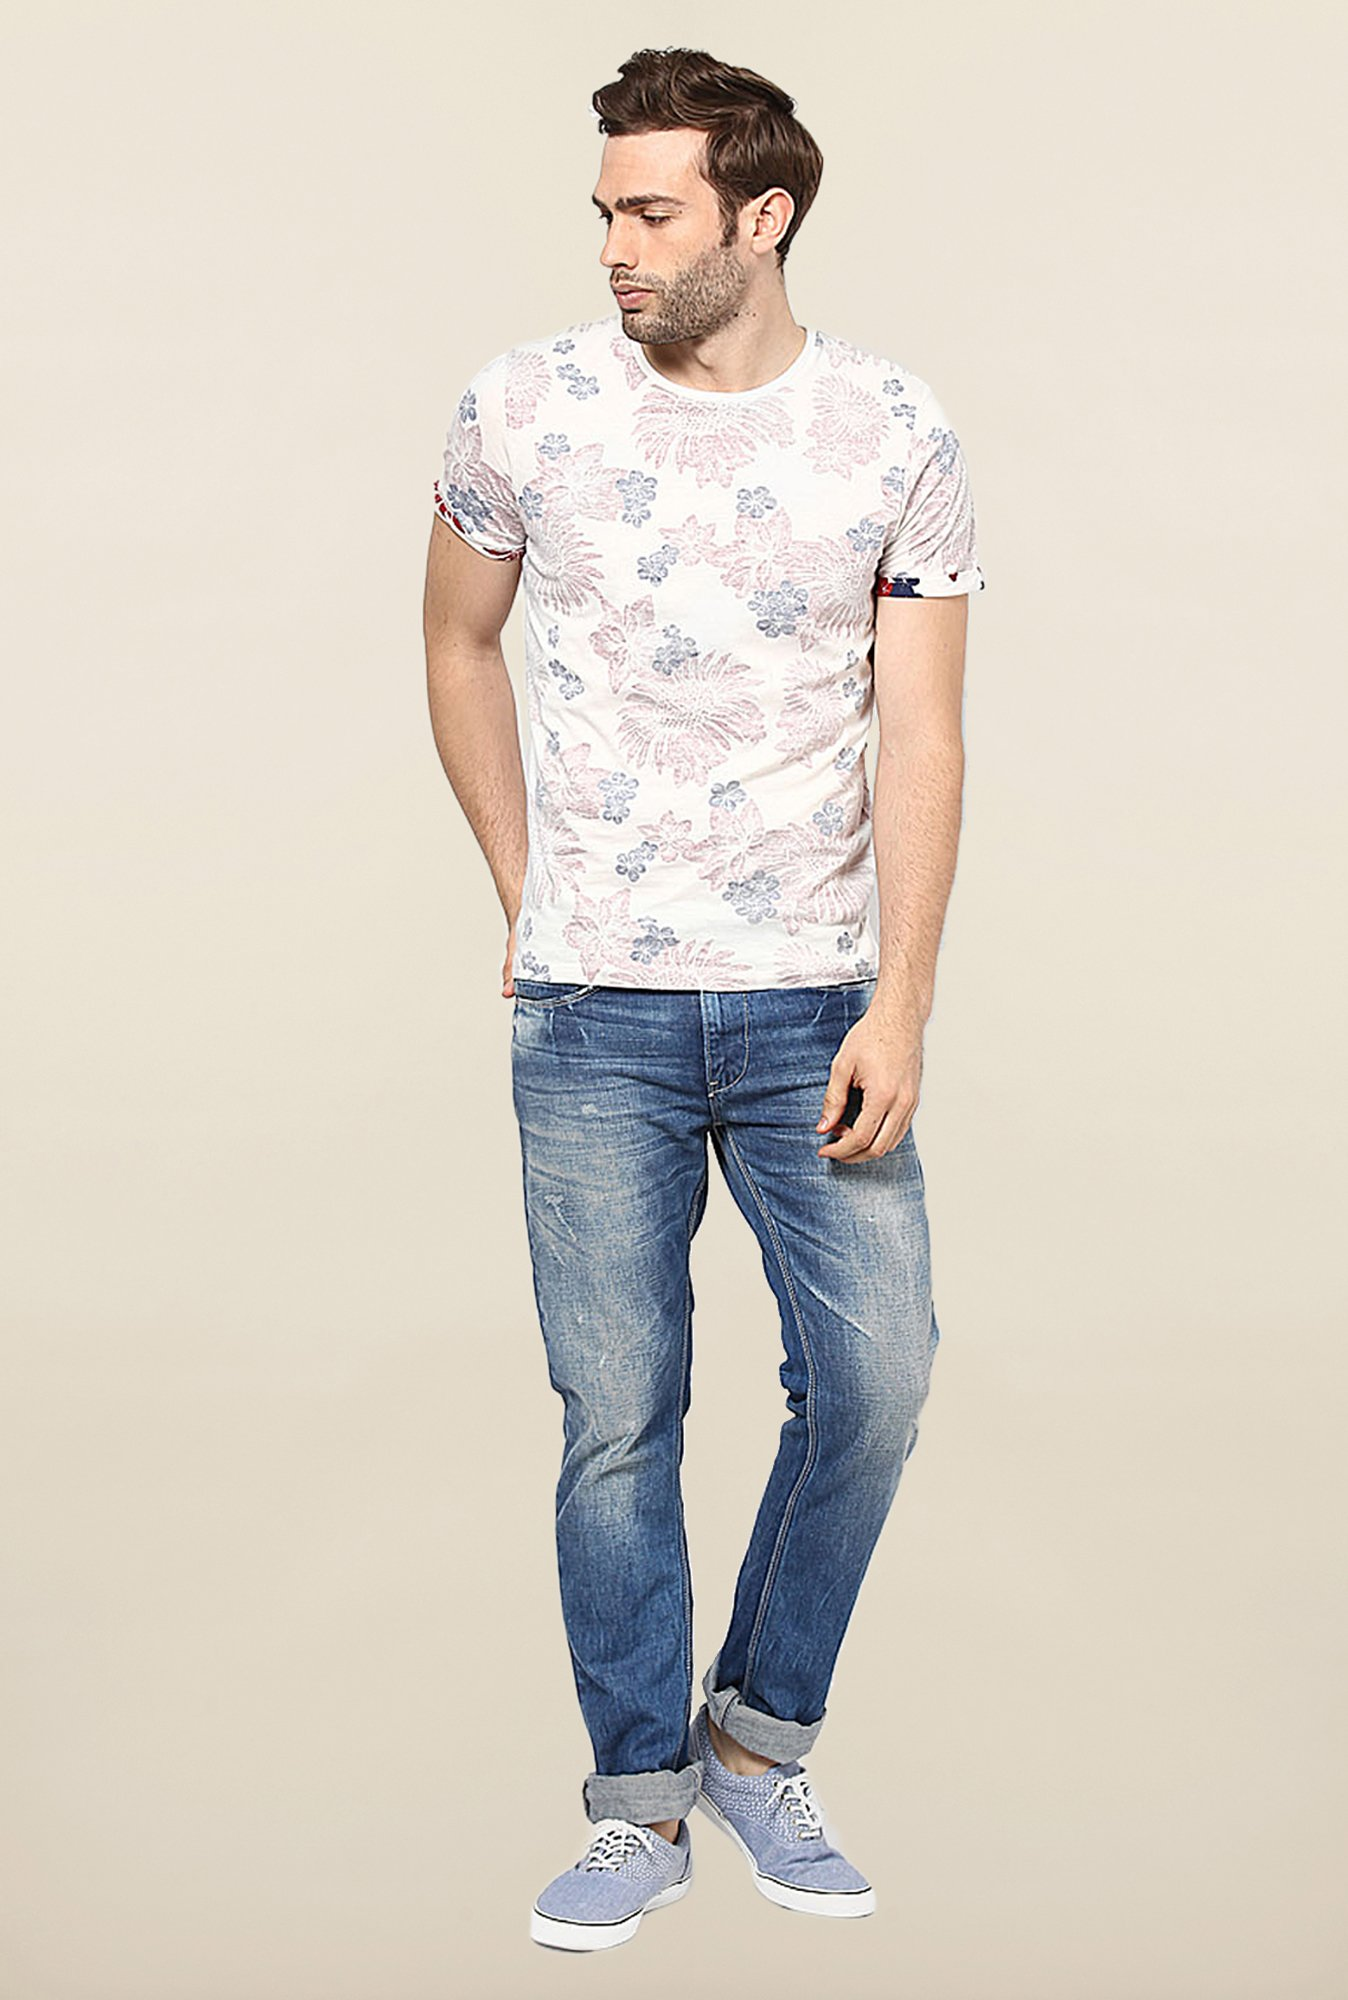 Jack & Jones White Floral Printed T-Shirt